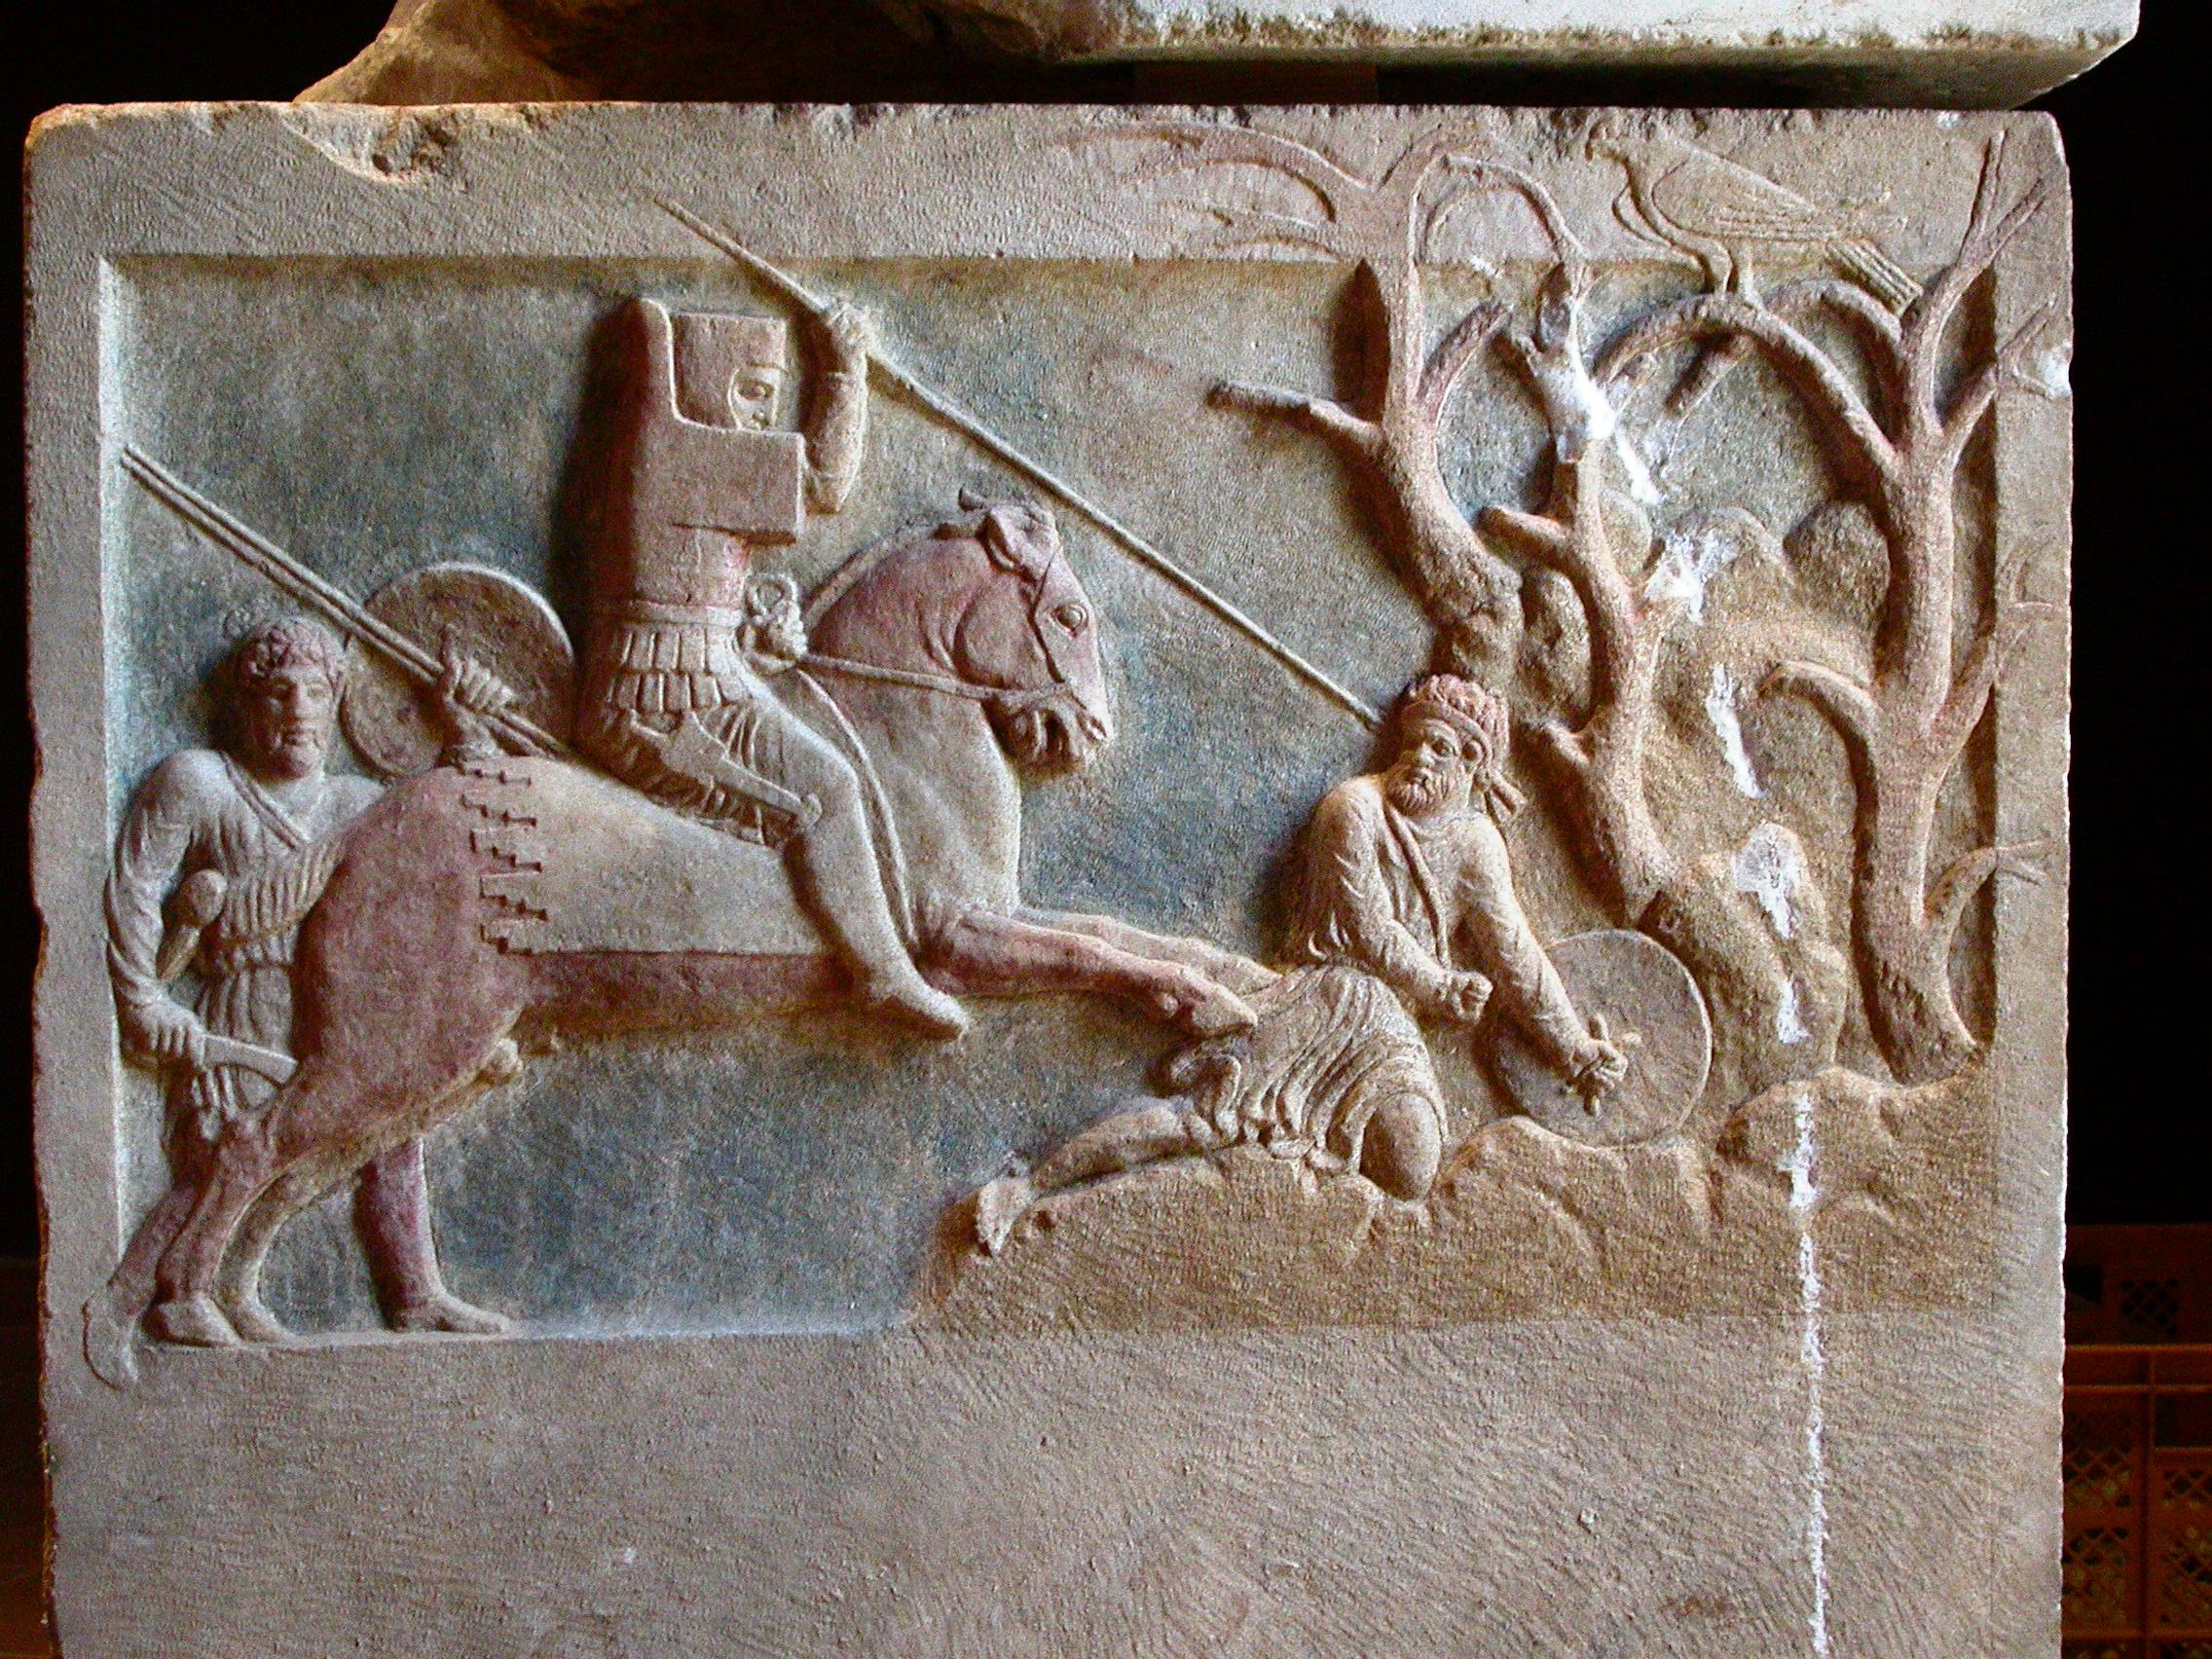 The Çan Sarcophagus, detail of Persian horseman spearing fallen footsoldier, 400-375 BC, village of Altıkulaç, near Çan, modern-day Turkey